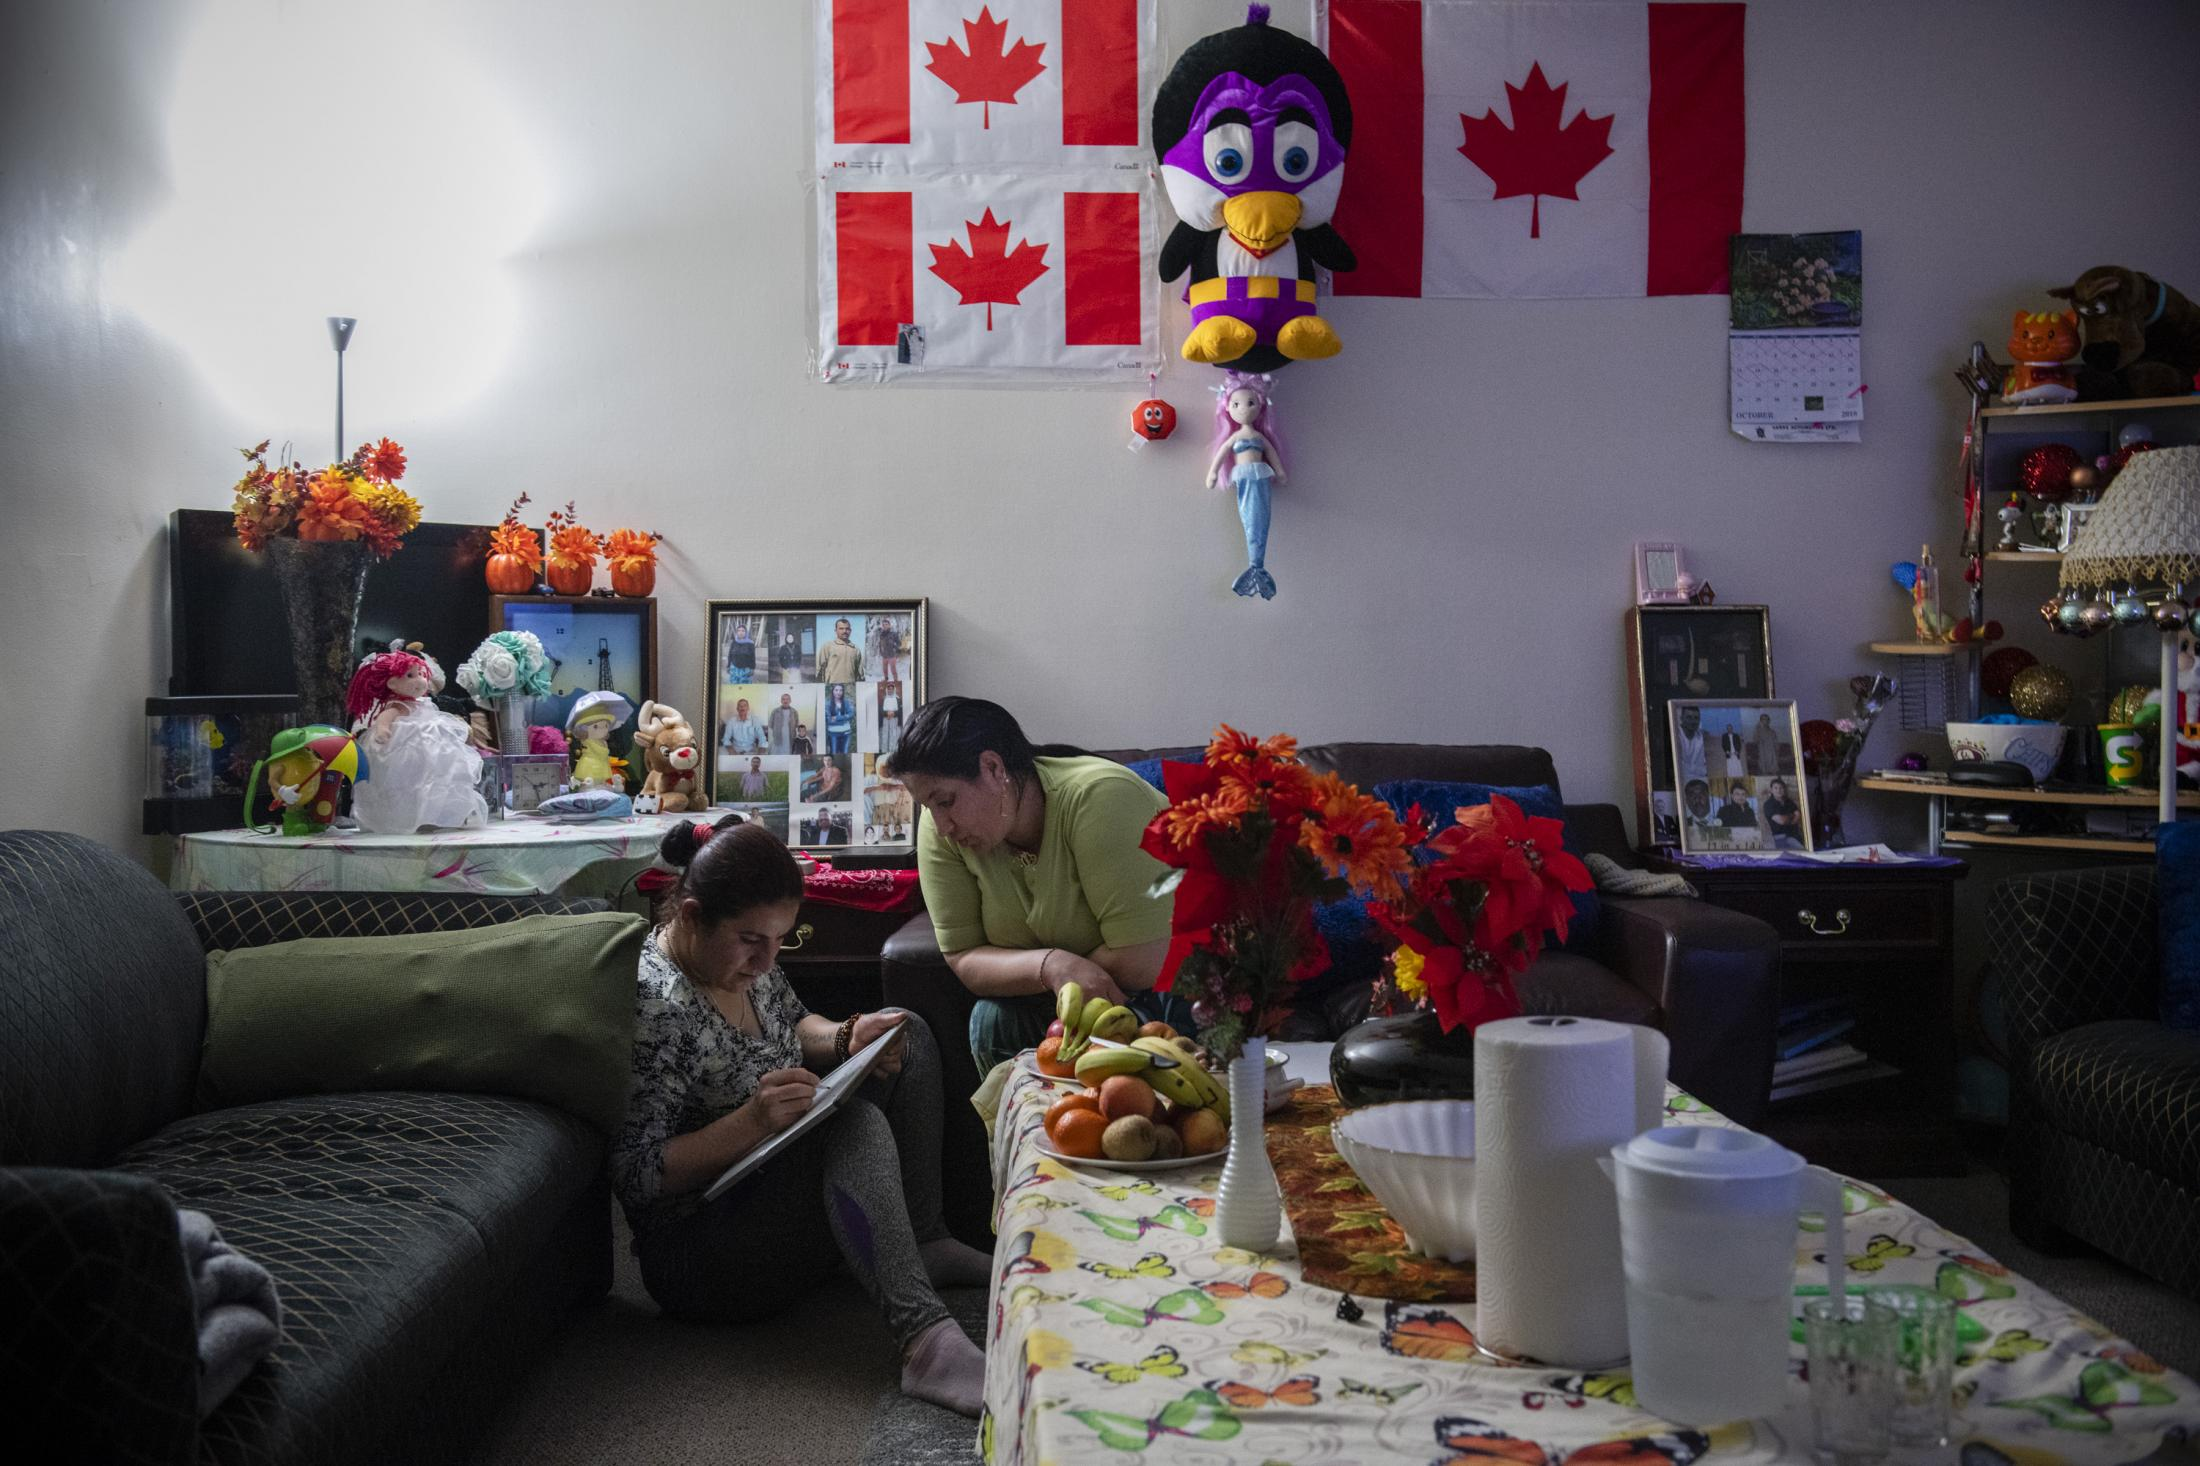 CALGARY | CANADA | 10/17/18 | Jihan (29) and Munifa (24) practice their english alphabet and numbers on a small portable whiteboard in the evening. Jihan and Munifa are Yazidi refugees living in Calgary, arriving in Canada during the summer of 2017 as part of the Victims of Daesh program, a special resettlement program created by the Canadian government to help Yazidi refugees.